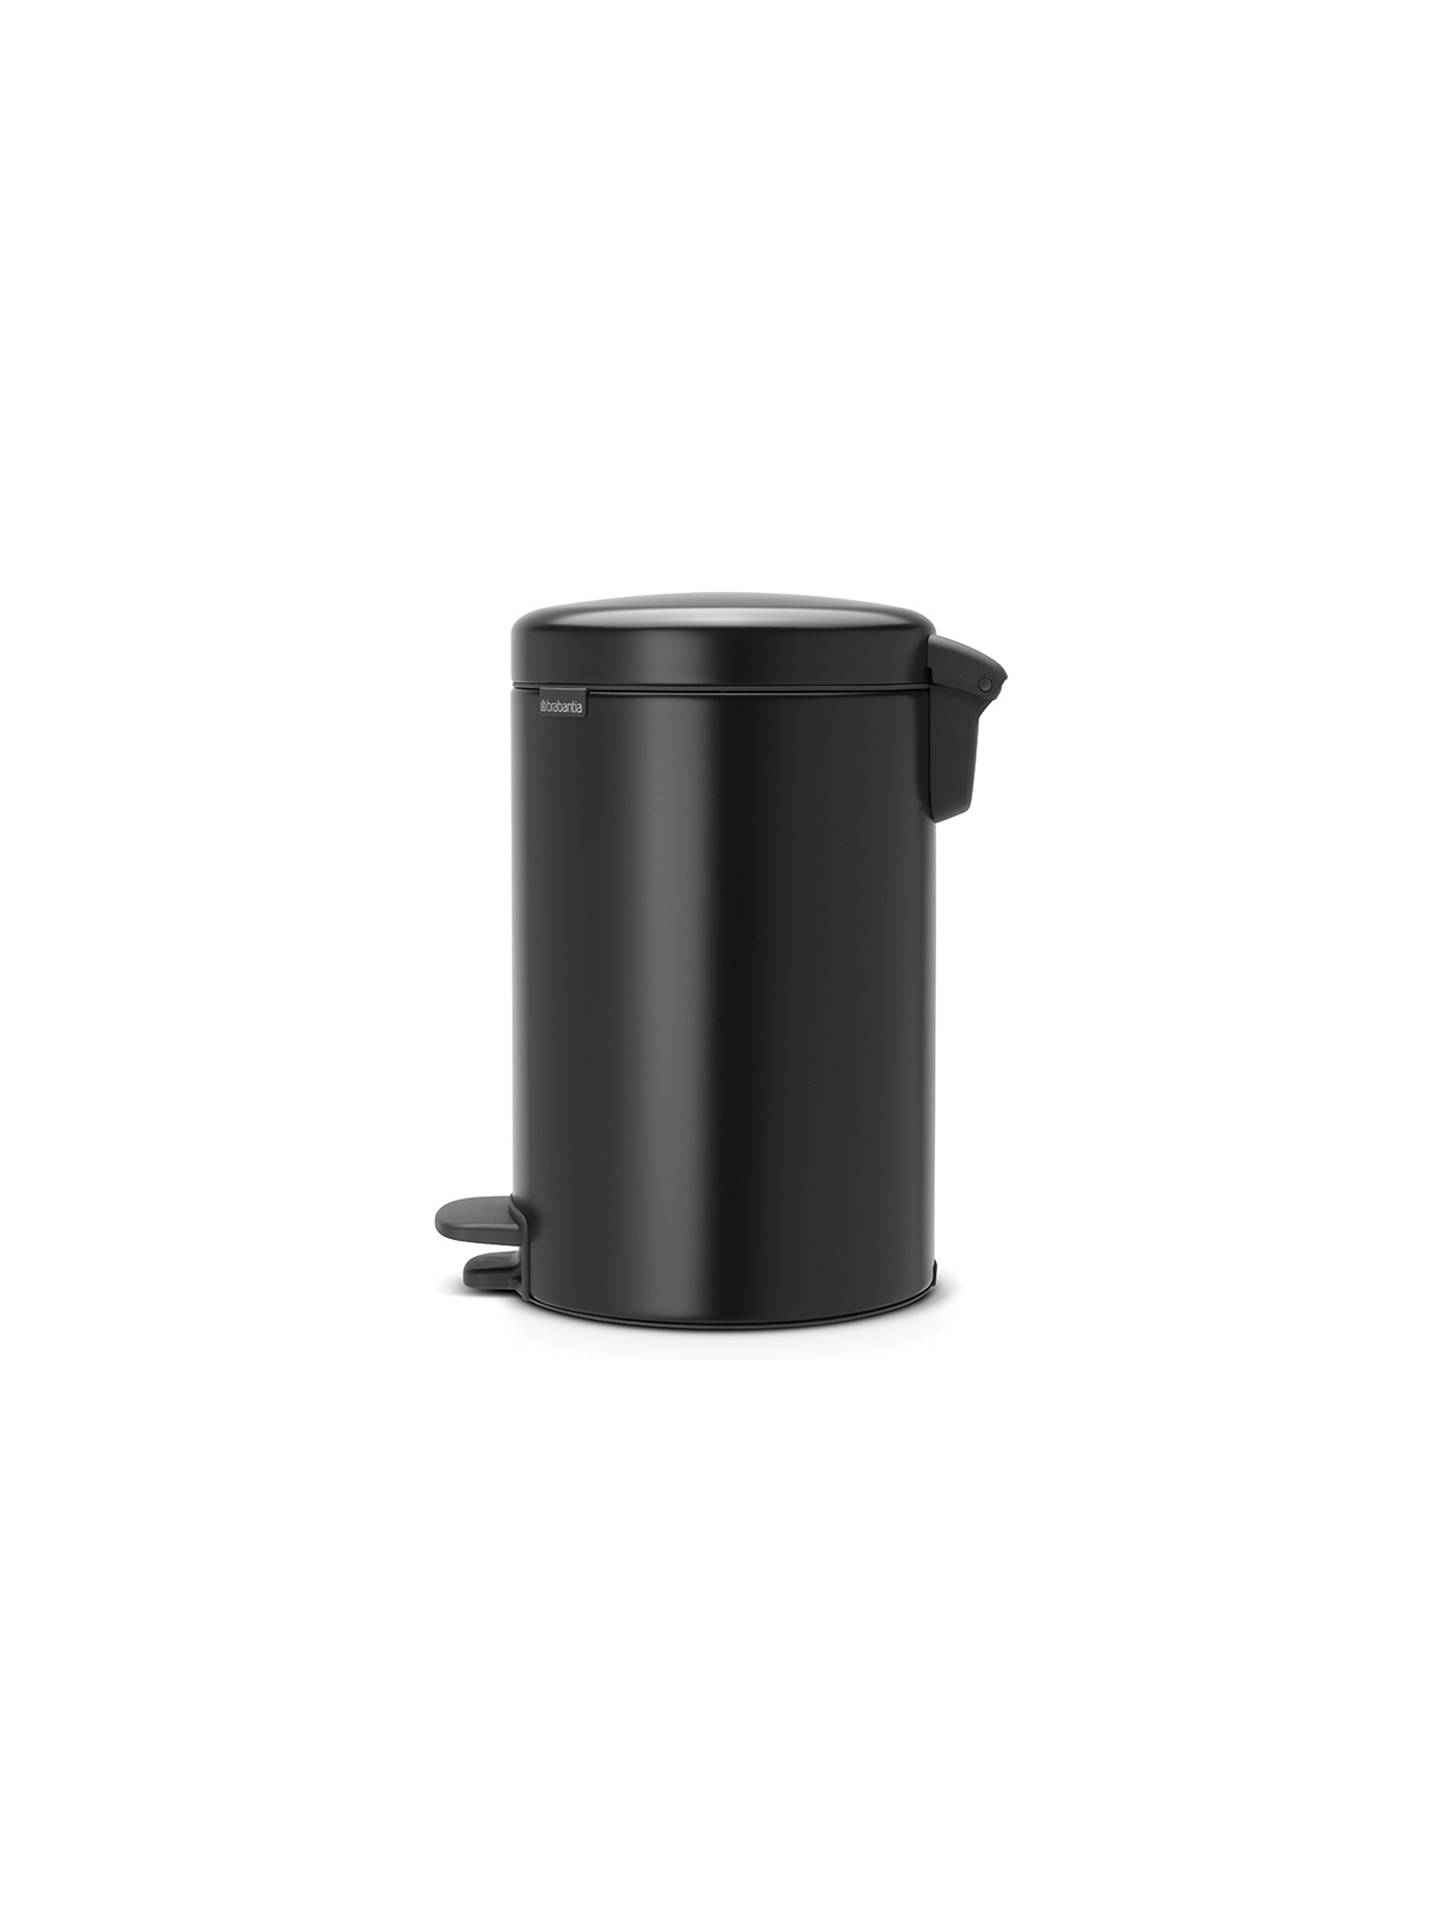 BuyBrabantia newIcon Pedal Bin, 12L, Matt Black Online at johnlewis.com